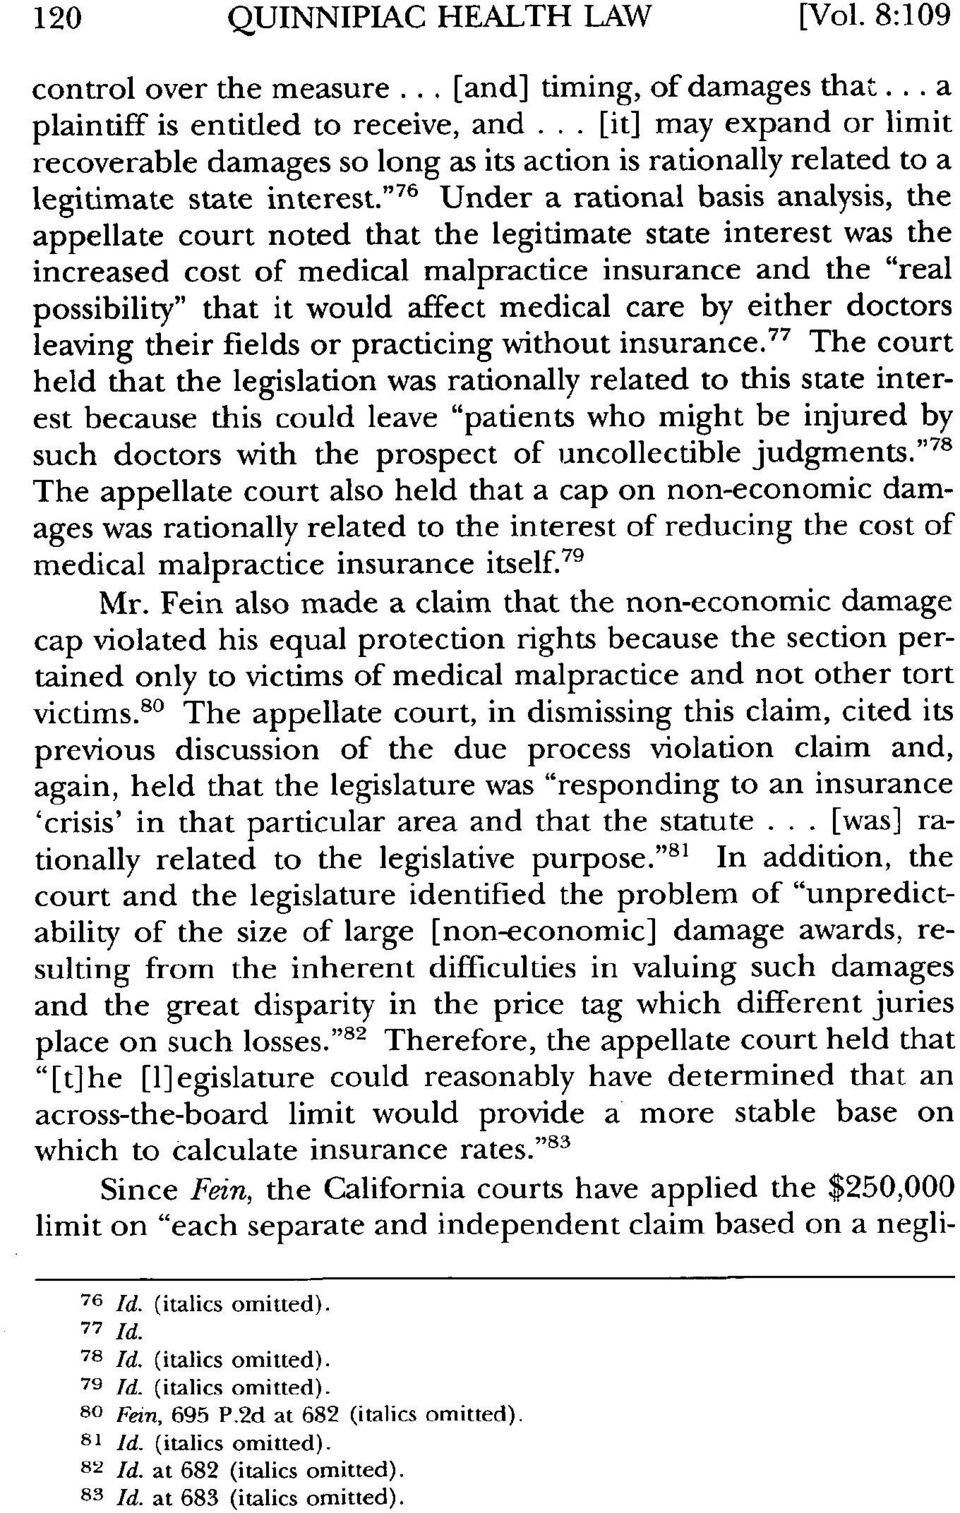 """76 Under a rational basis analysis, the appellate court noted that the legitimate state interest was the increased cost of medical malpractice insurance and the ""real possibility"" that it would"